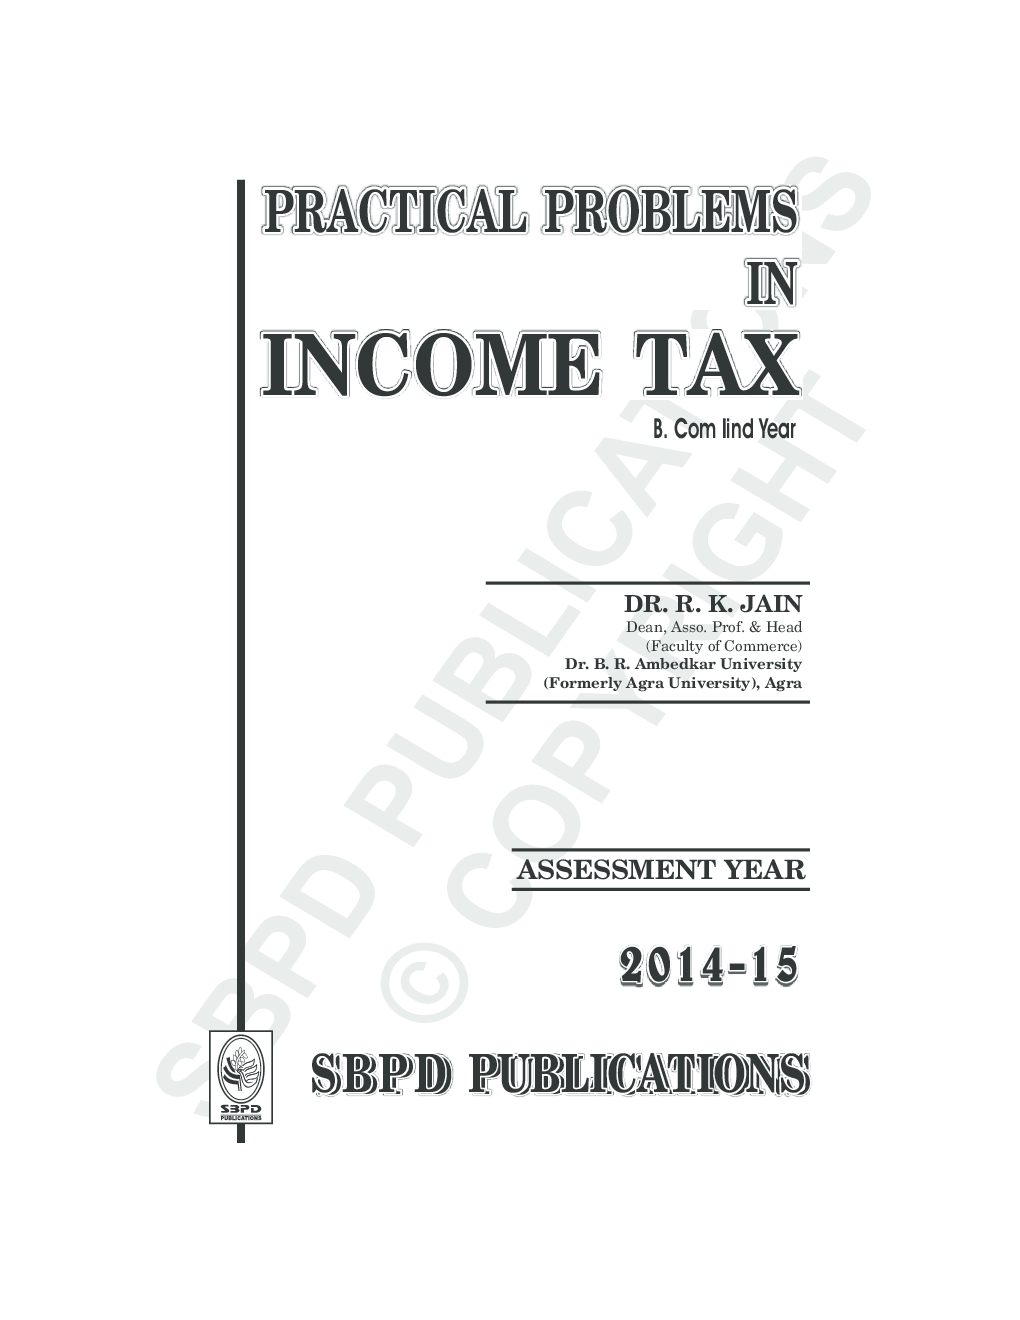 Practical Problems in Income Tax - Page 2